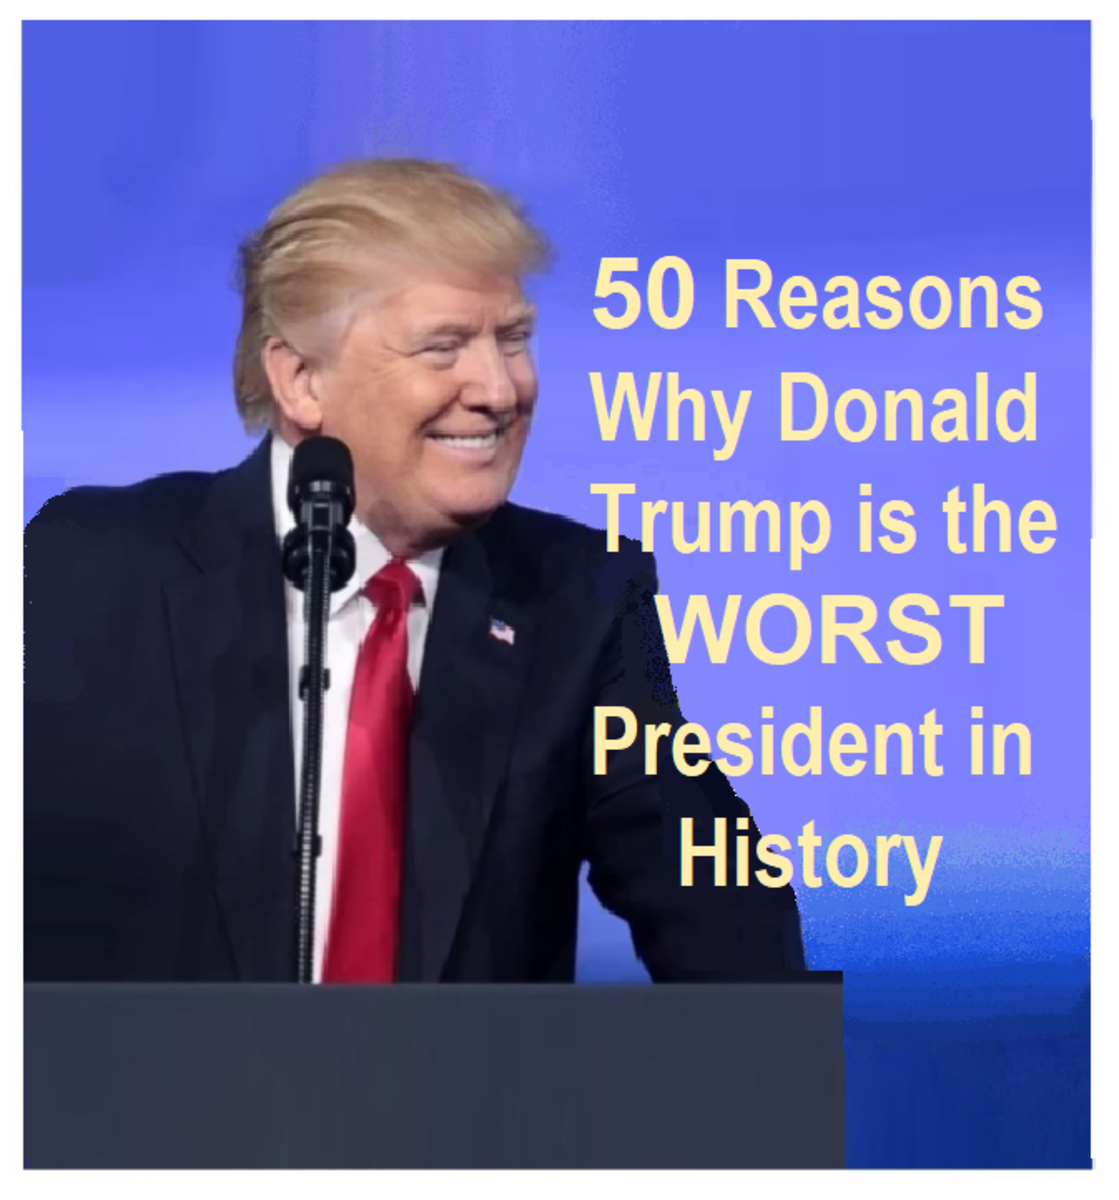 50 Reasons Why Donald Trump Could Be the Worst President in History